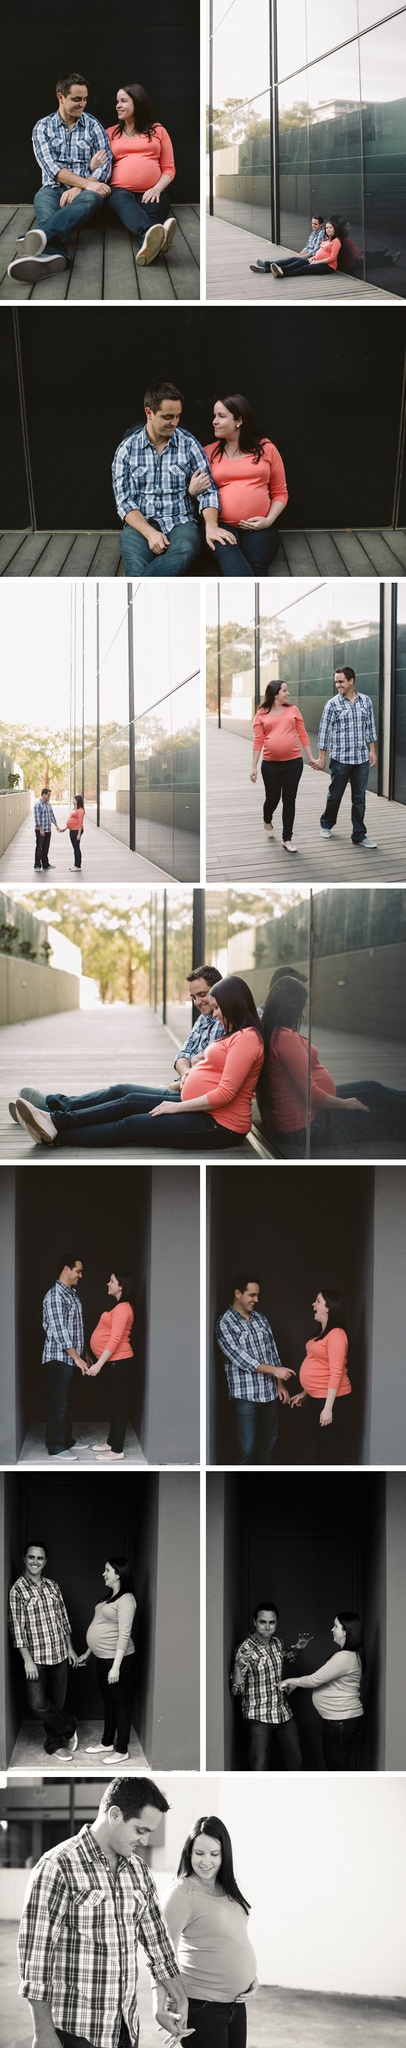 Thorson Photography Canberra Maternity